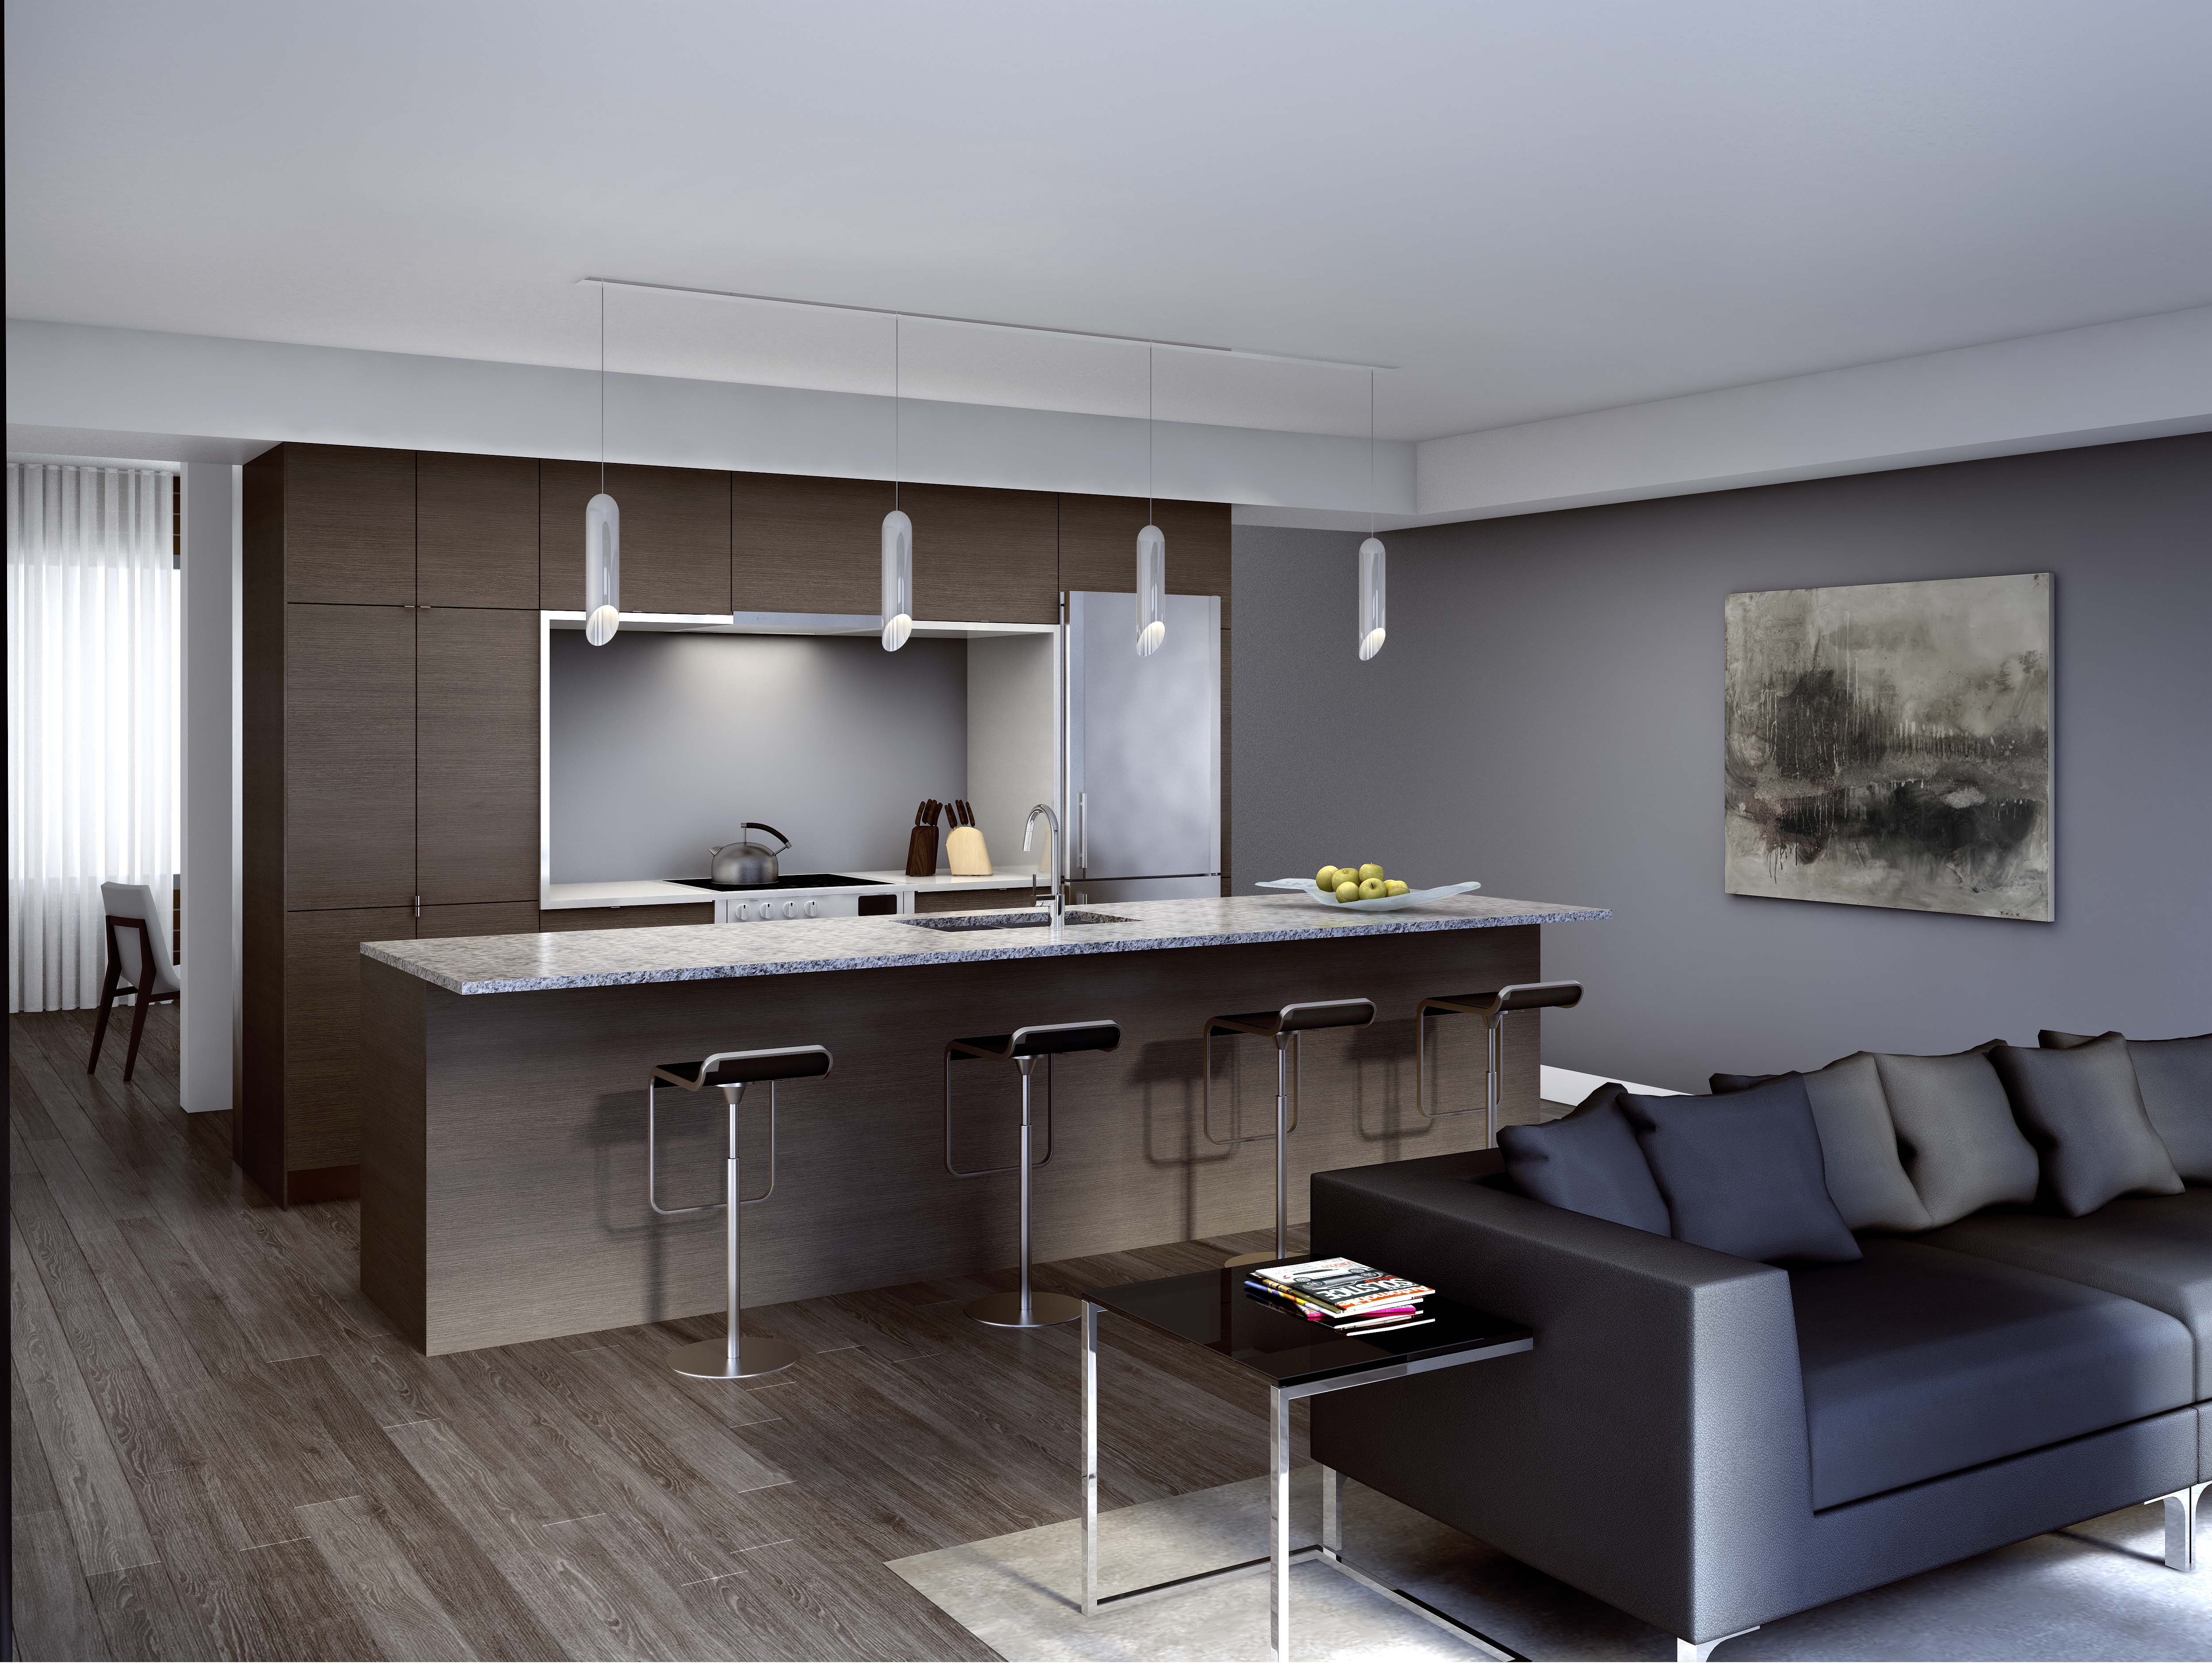 Great Gulf Trafalgar Landing living space rendering with dark wood kitchen, bar stools at island, and black leather sofa